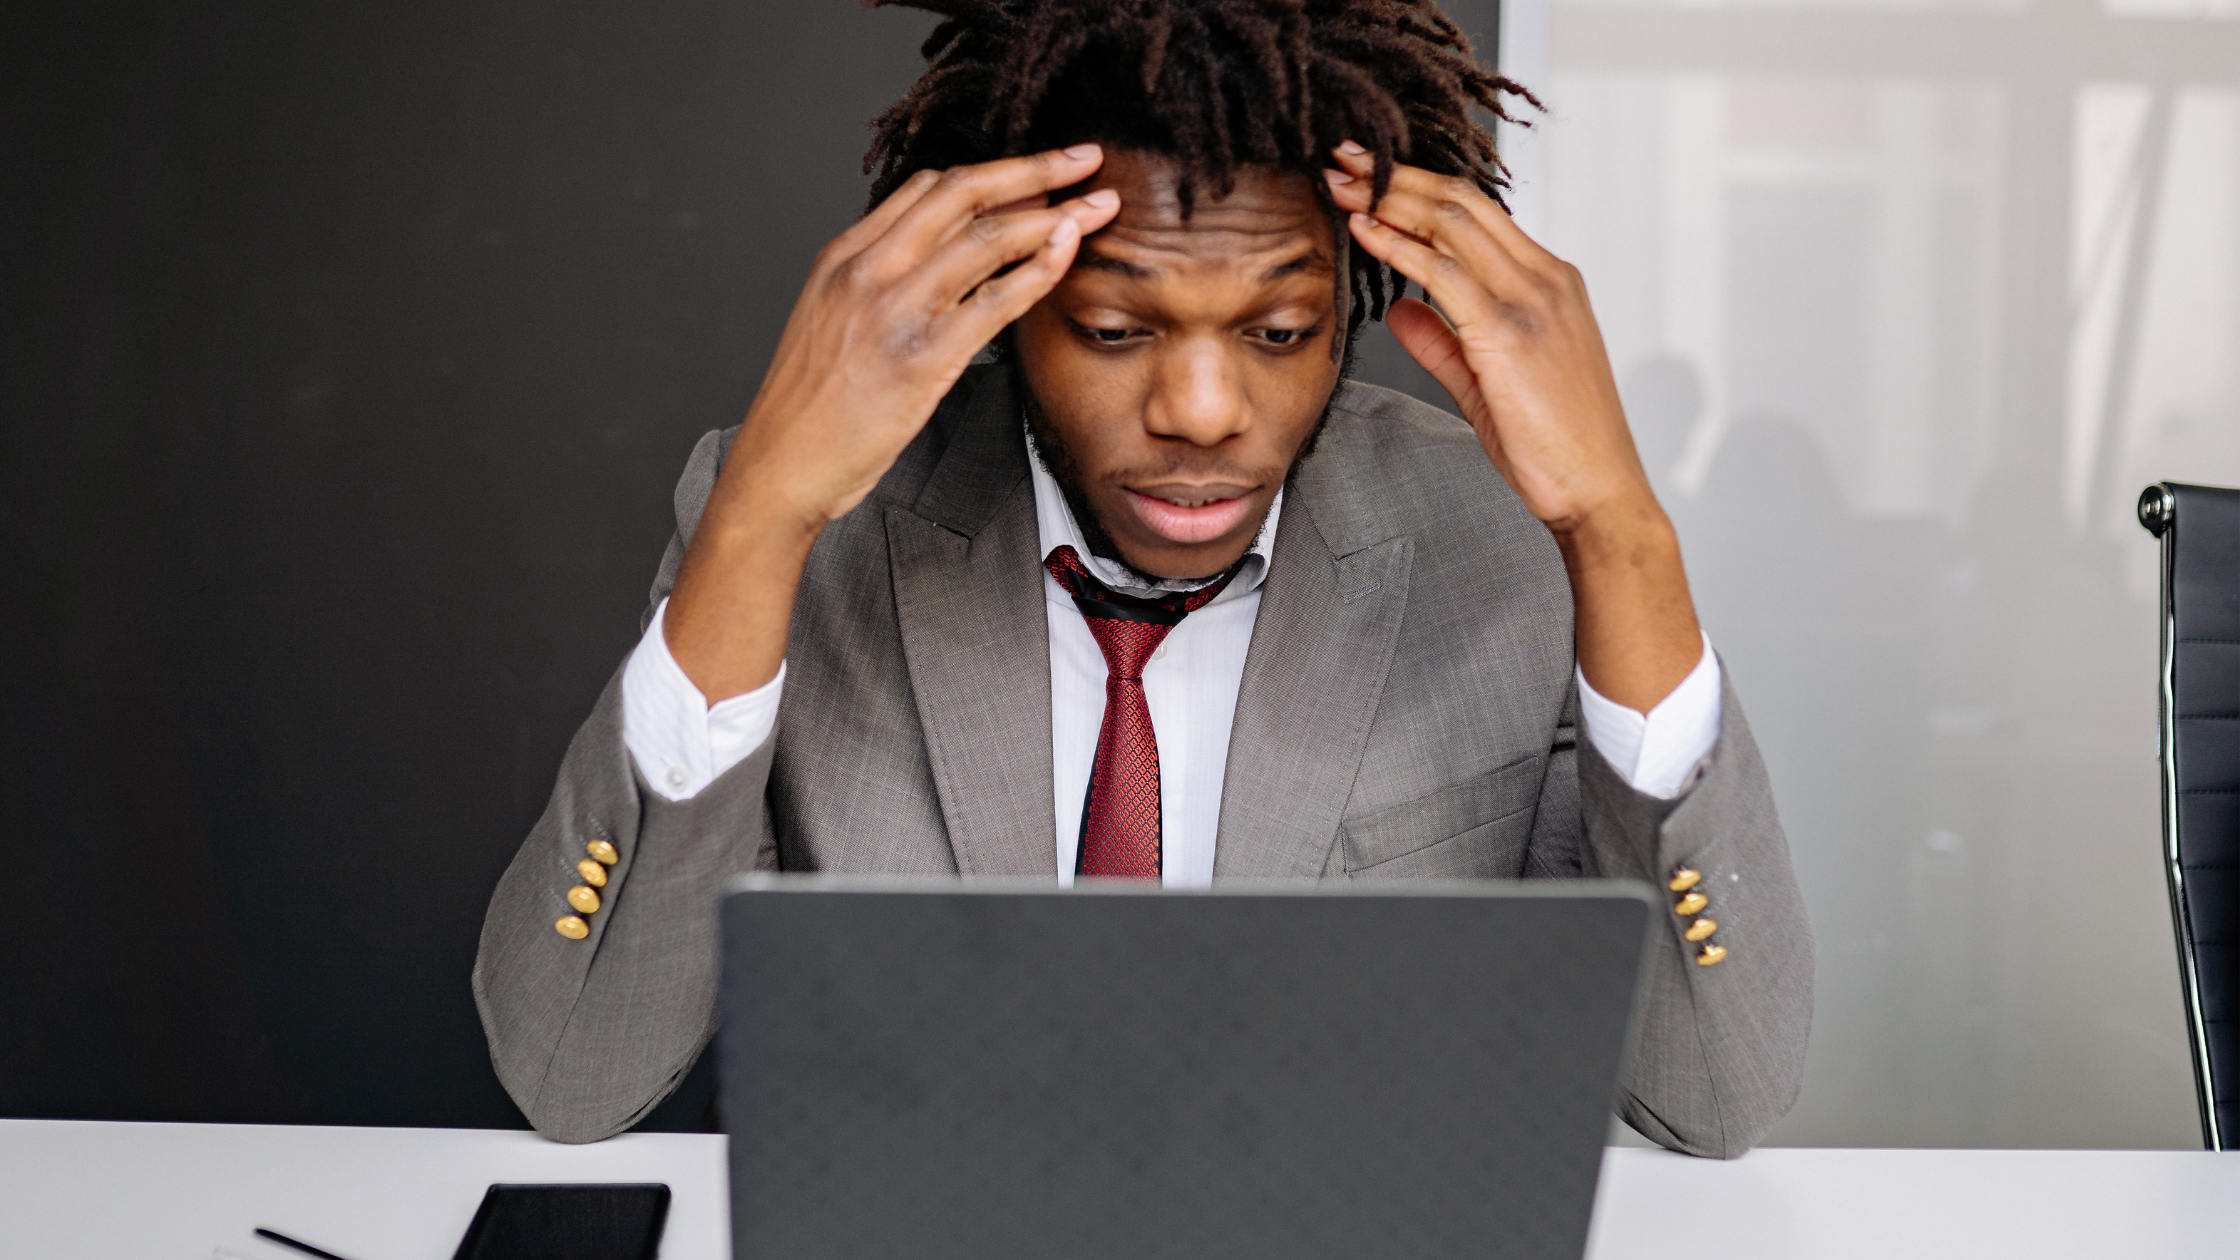 Man with hands on head staring at laptop frustrated